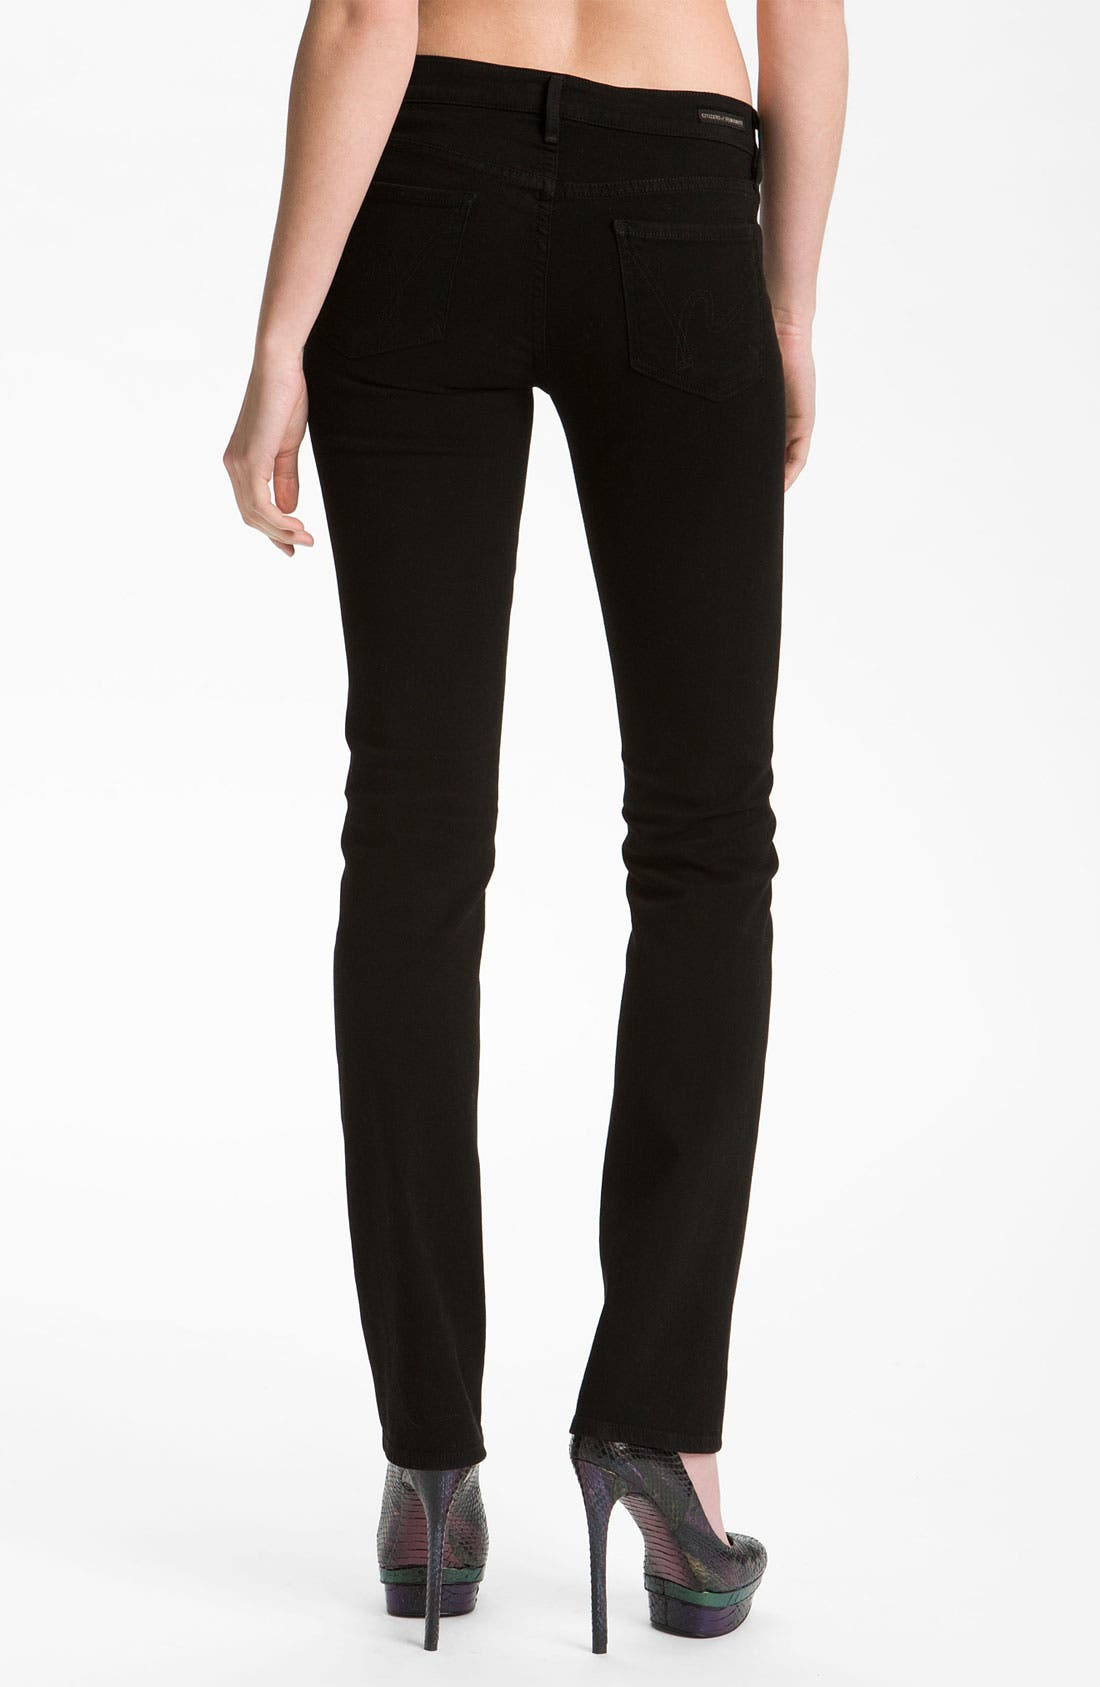 Alternate Image 2  - Citizens of Humanity 'Ava' Straight Leg Stretch Jeans (Vamp Black) (Online Exclusive)